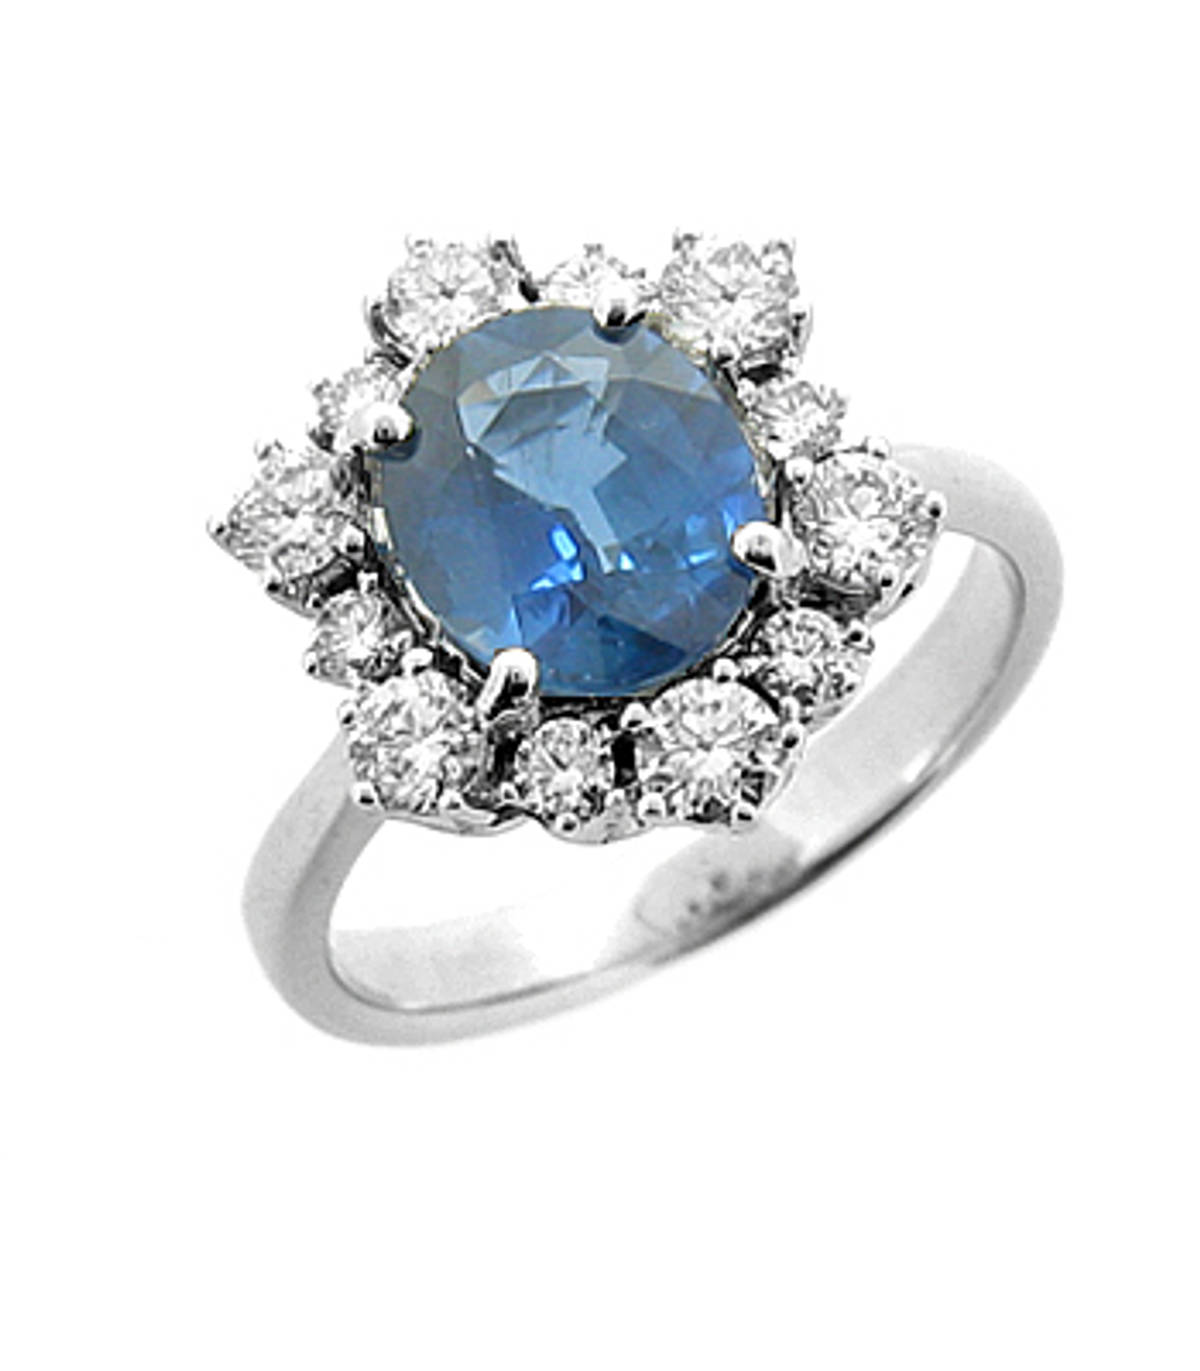 Sapphire and diamond cluster ring in 18 ct white gold